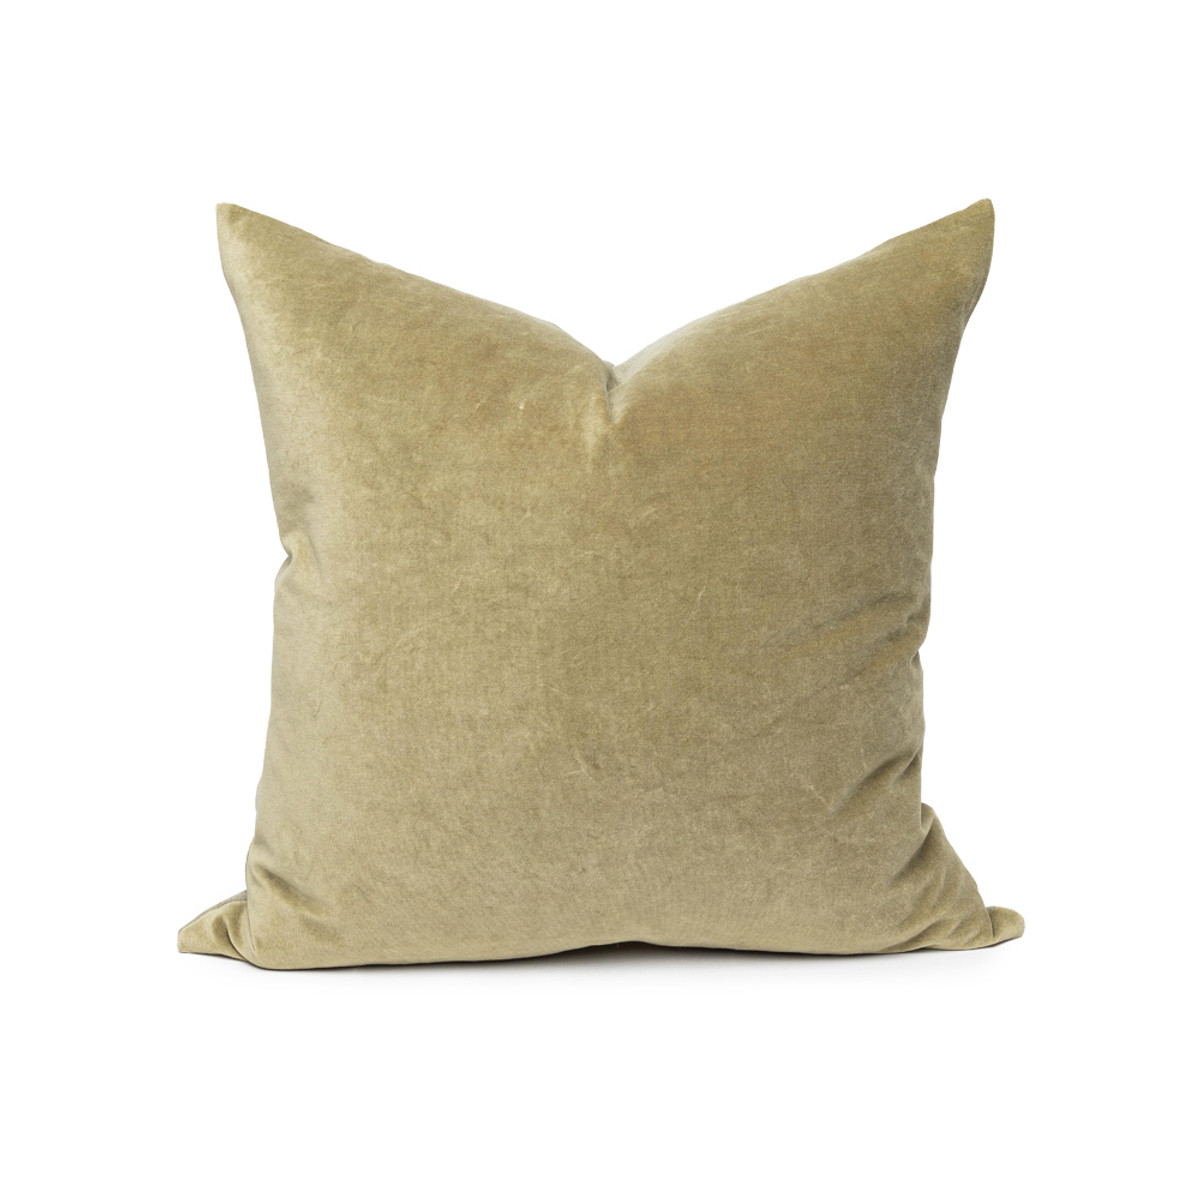 Sophie Olive Green Jade Velvet Pillow Decorative Pillows Shop House Of Cindy